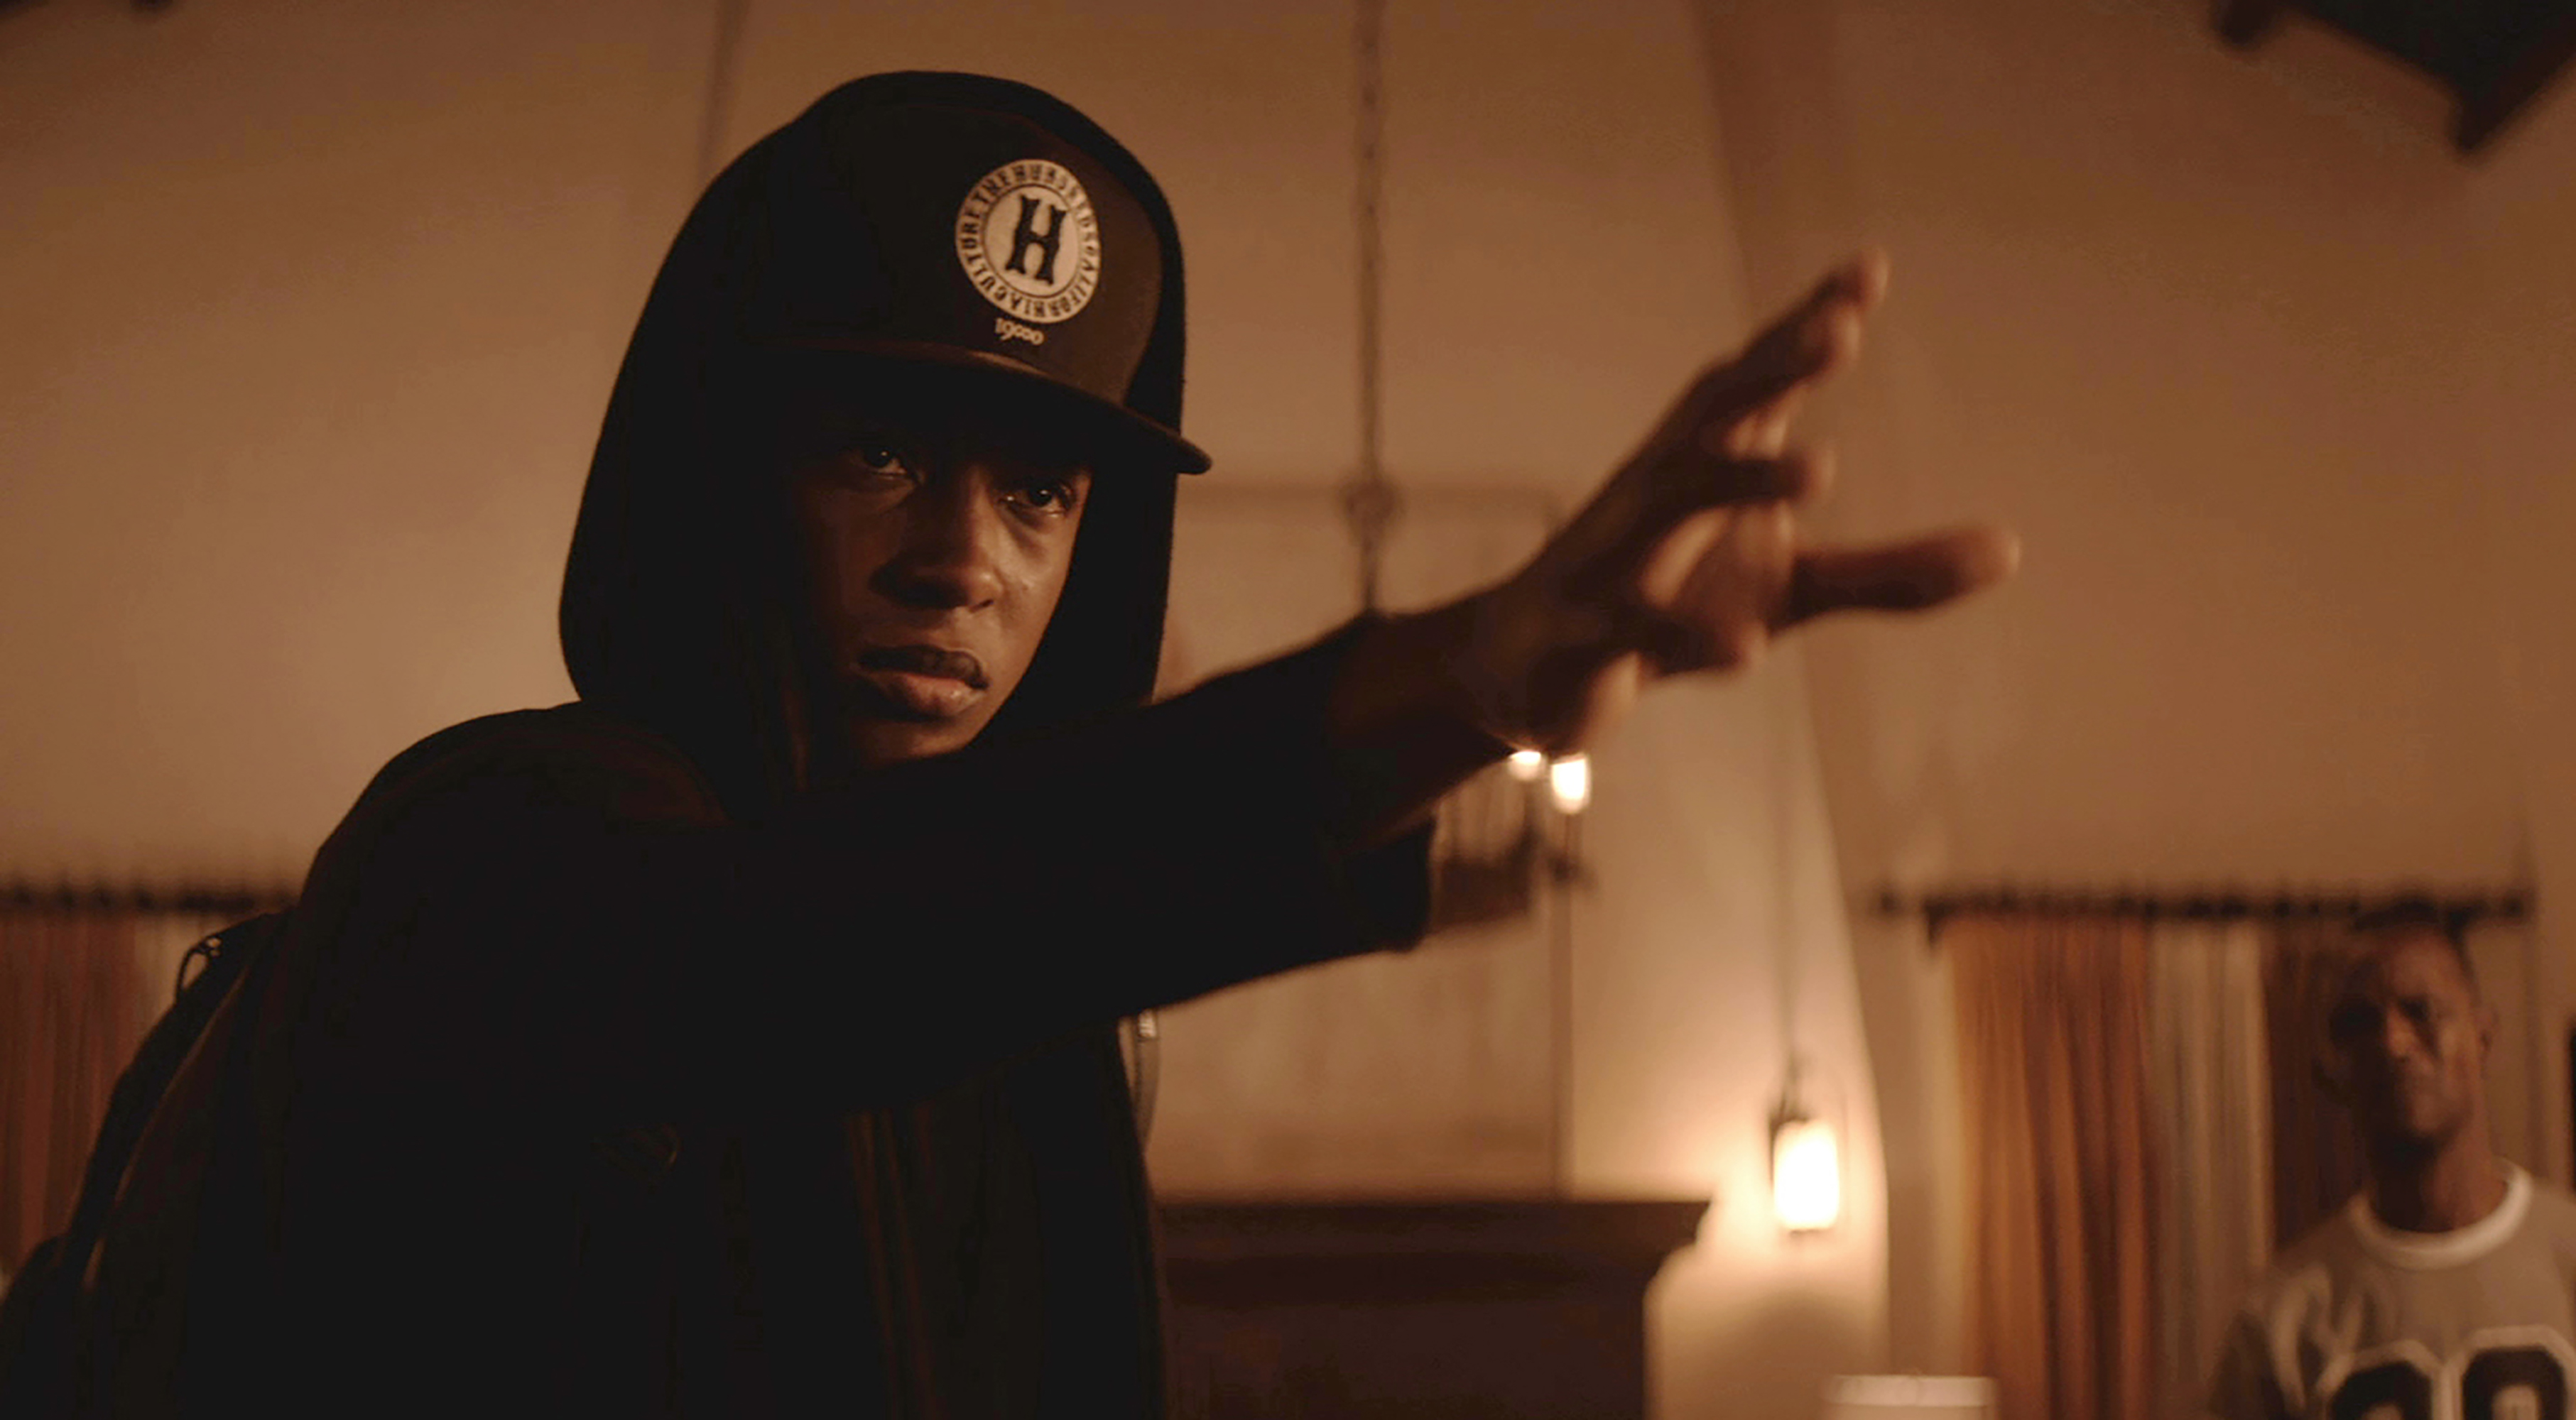 Sleight skillfully crosses an intimate indie drama with a superhero origin story